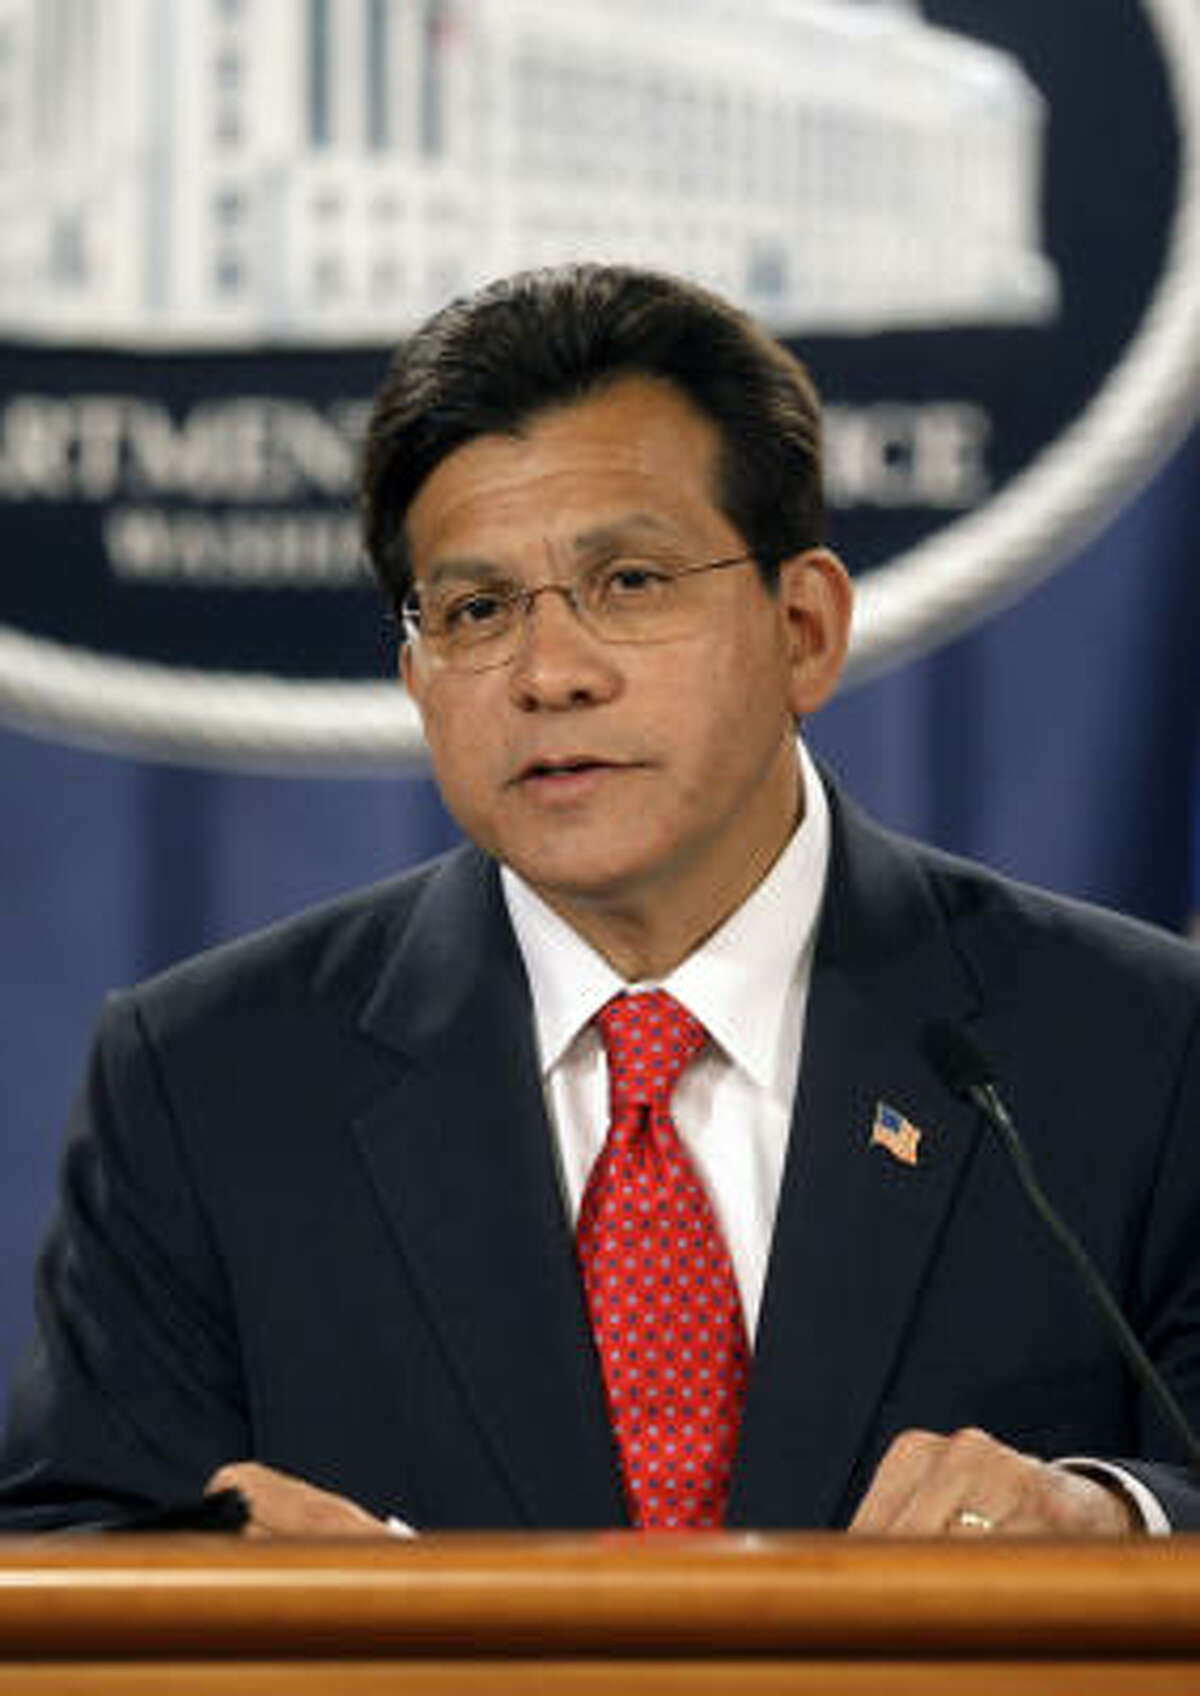 Attorney General Alberto Gonzales announces his resignation during at a news conference at the Department of Justice in Washington.